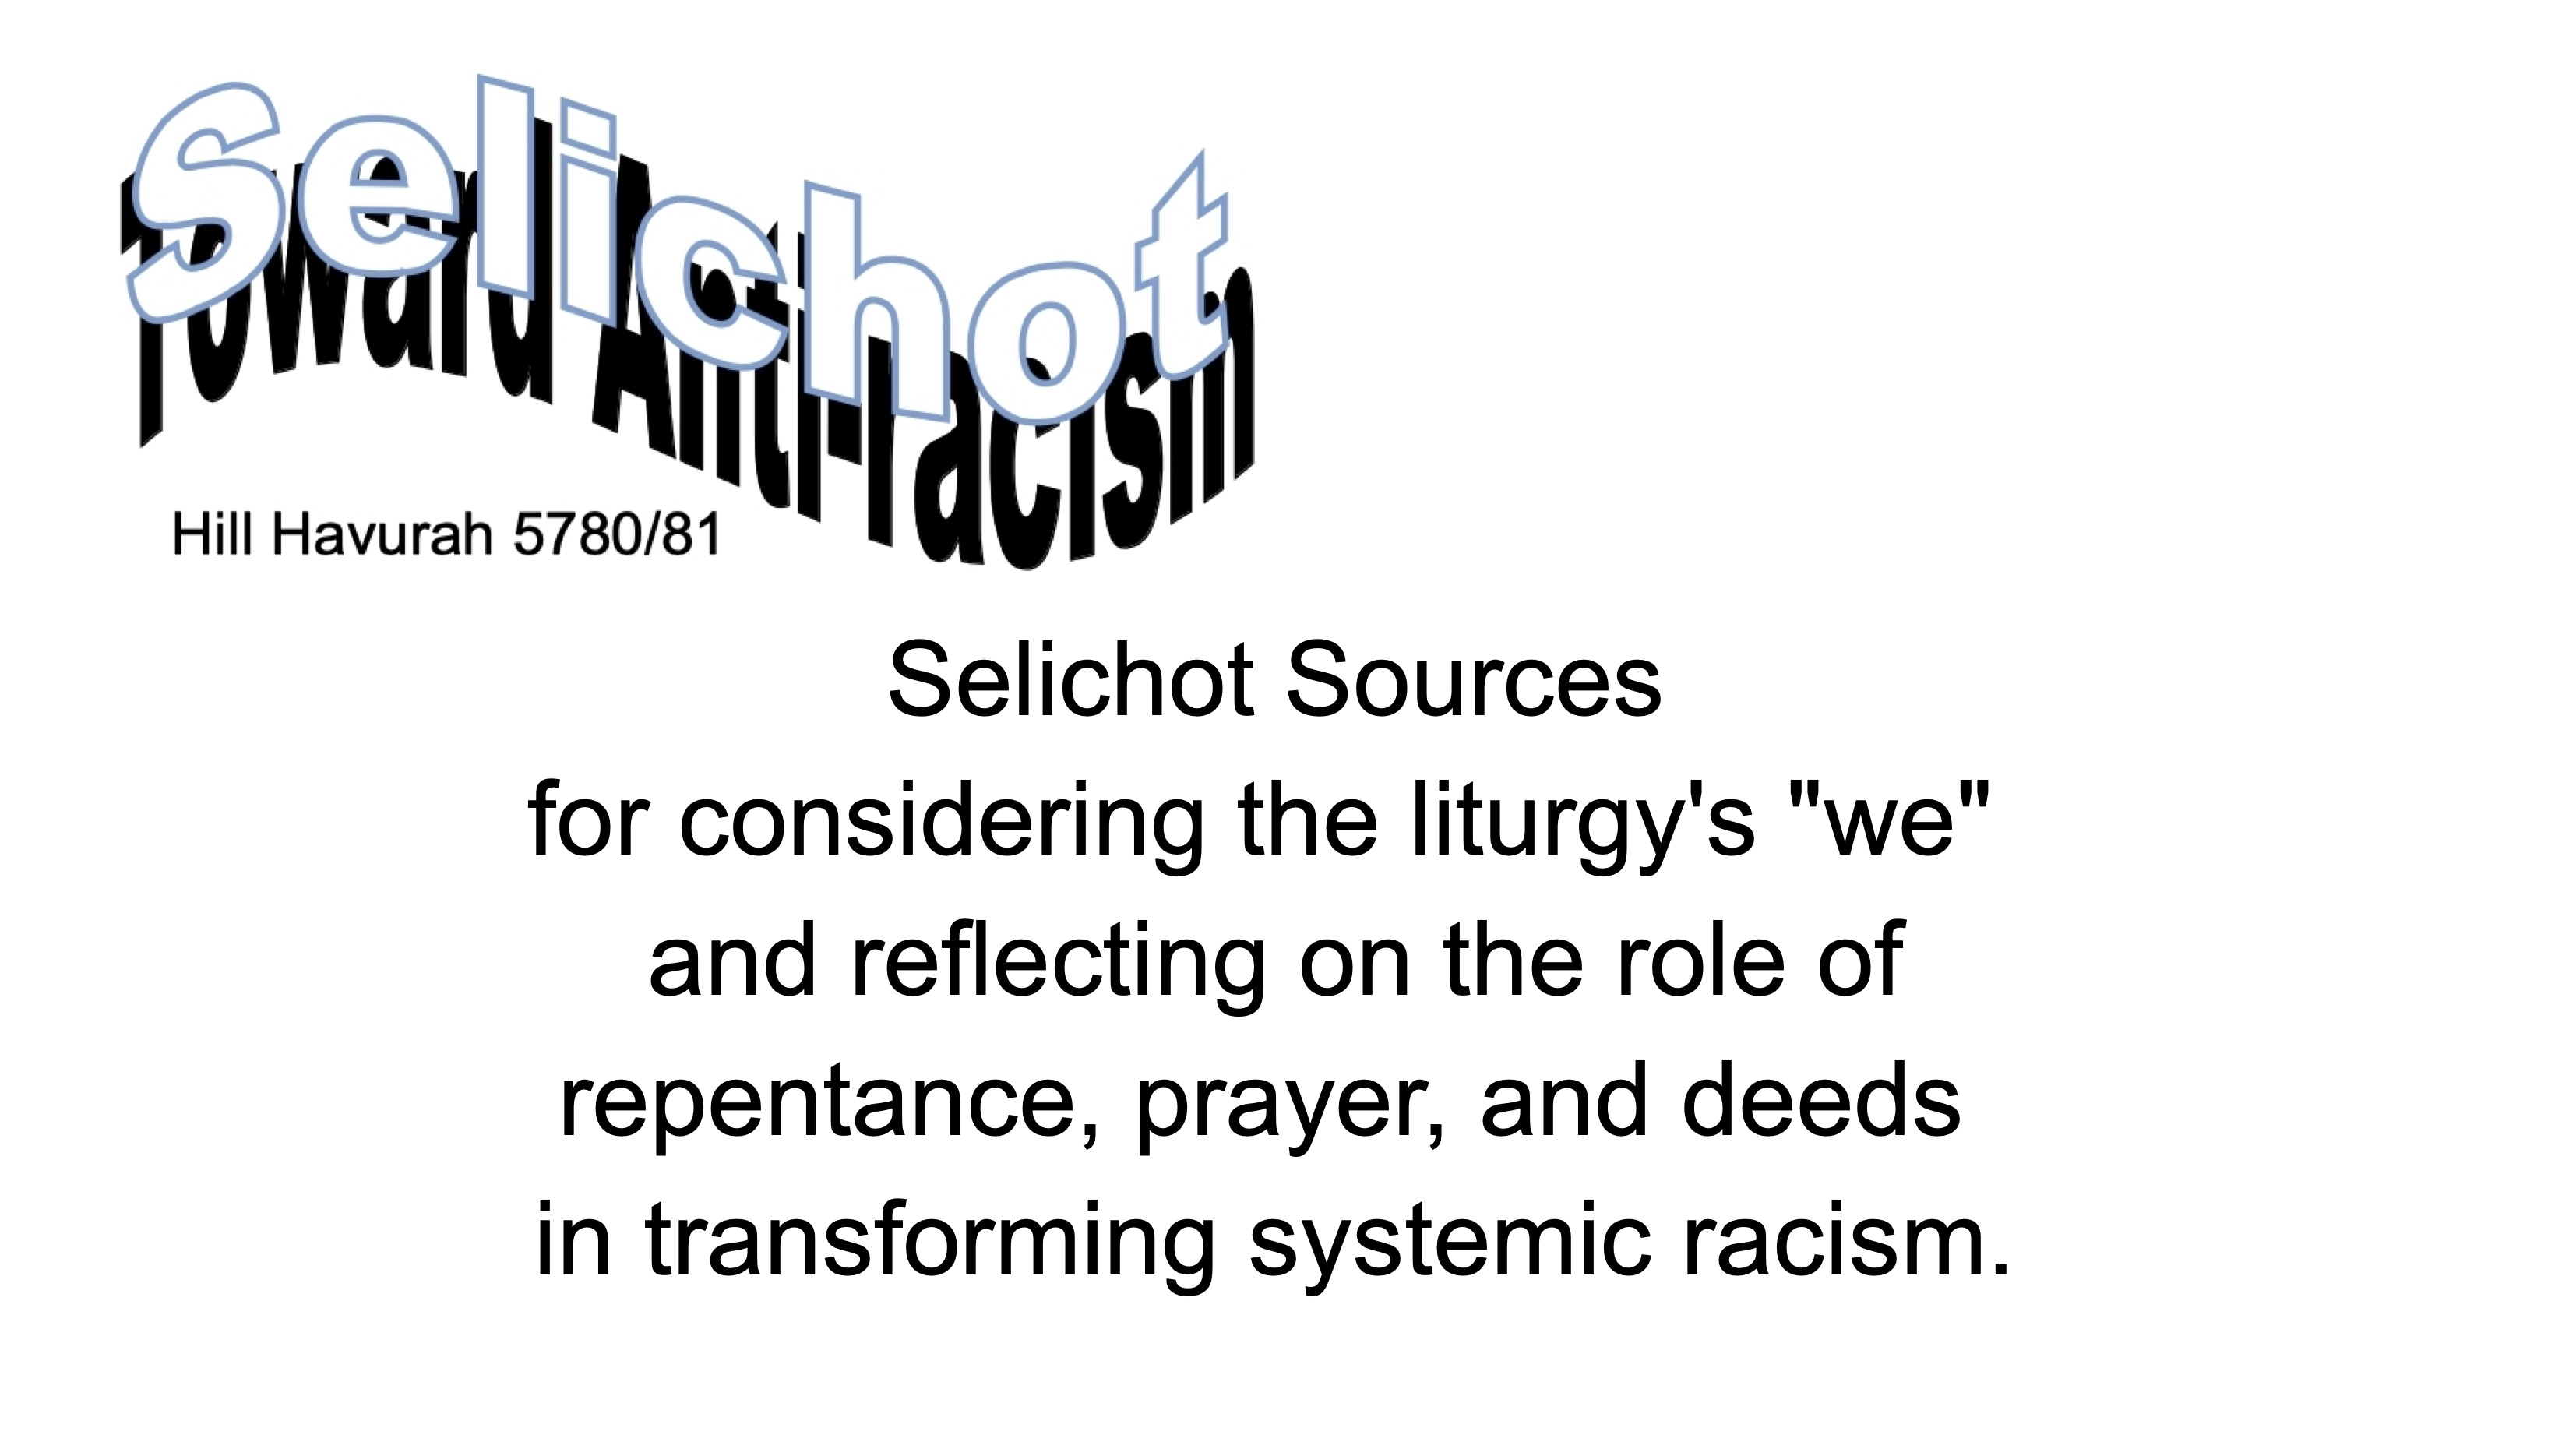 Toward Anti-Racism — Selichot Sources